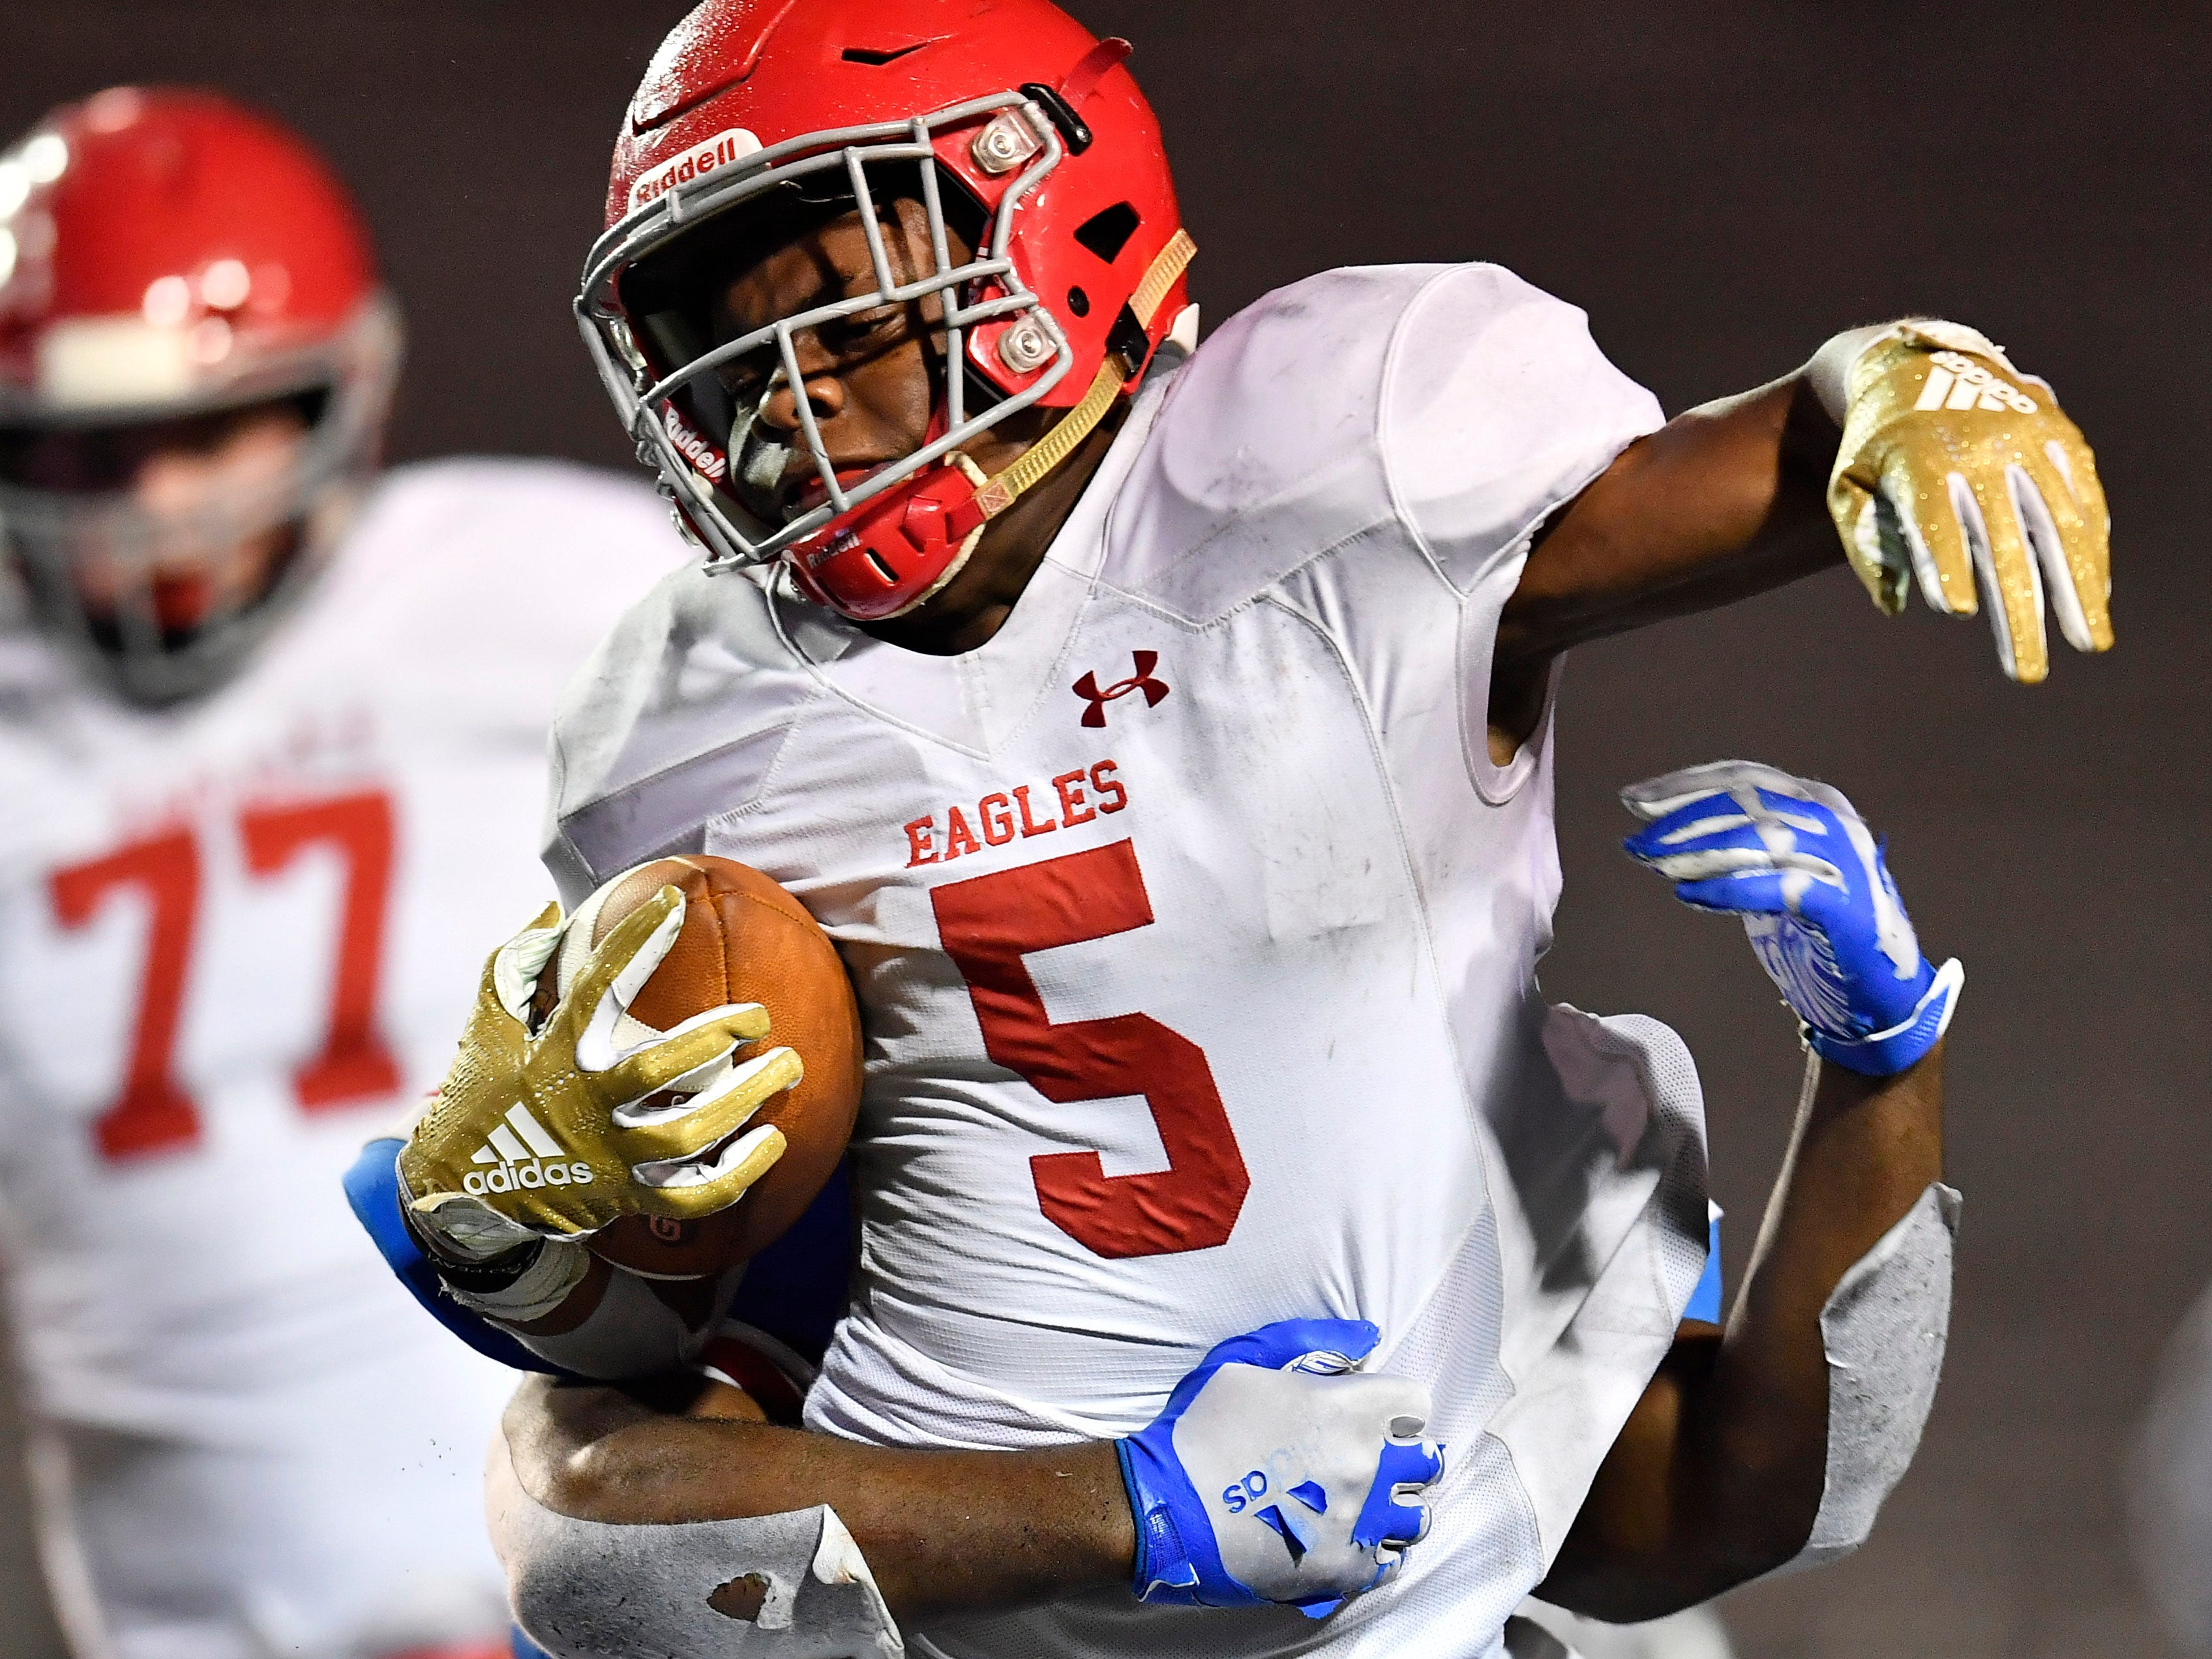 Brentwood Academy running back Tomario Pleasant (5) is brought down on a carry in the second quarter at the Division II-AAA BlueCross Bowl state championship at Tennessee Tech's Tucker Stadium in Cookeville, Tenn., on Friday, Nov. 30, 2018.